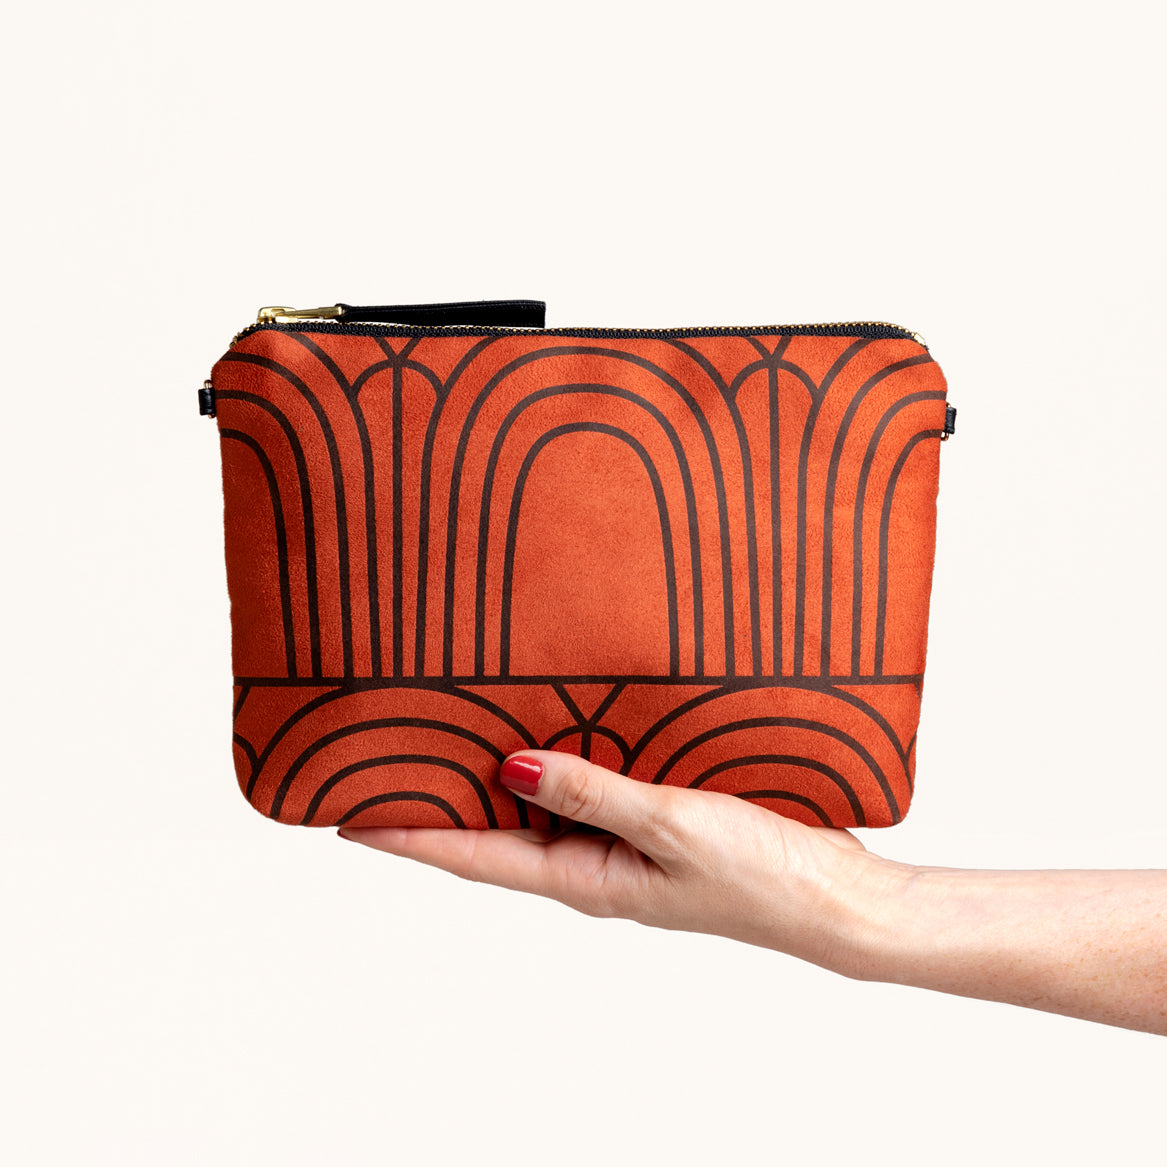 ... Art Deco Arches Print Clutch Purse by Lee Coren ... 04ca28c715342